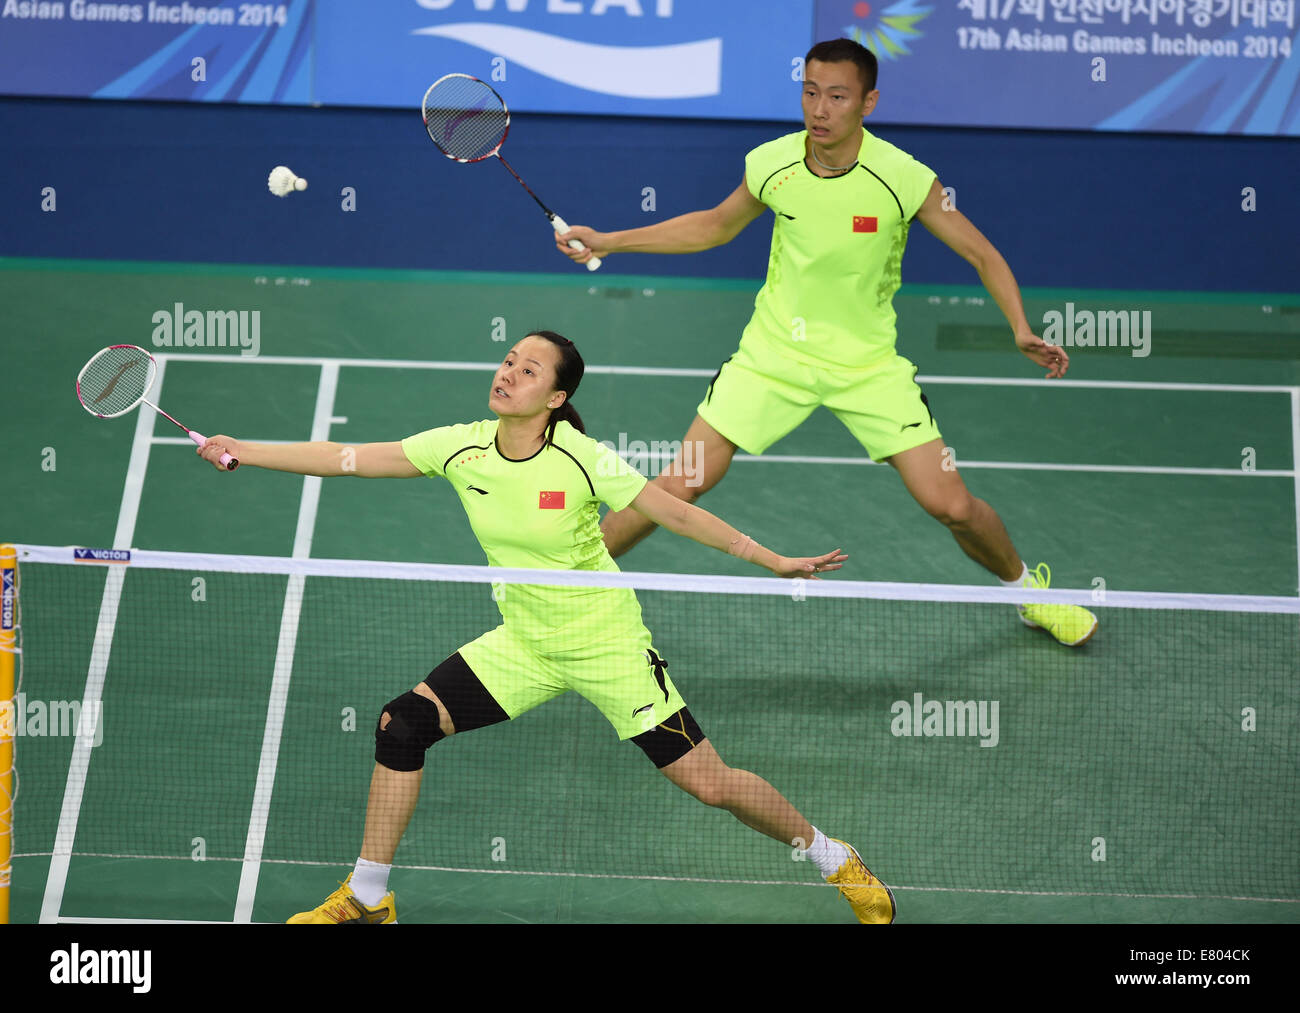 Incheon South Korea 27th Sep 2014 Zhang Nan Upper and Zhao